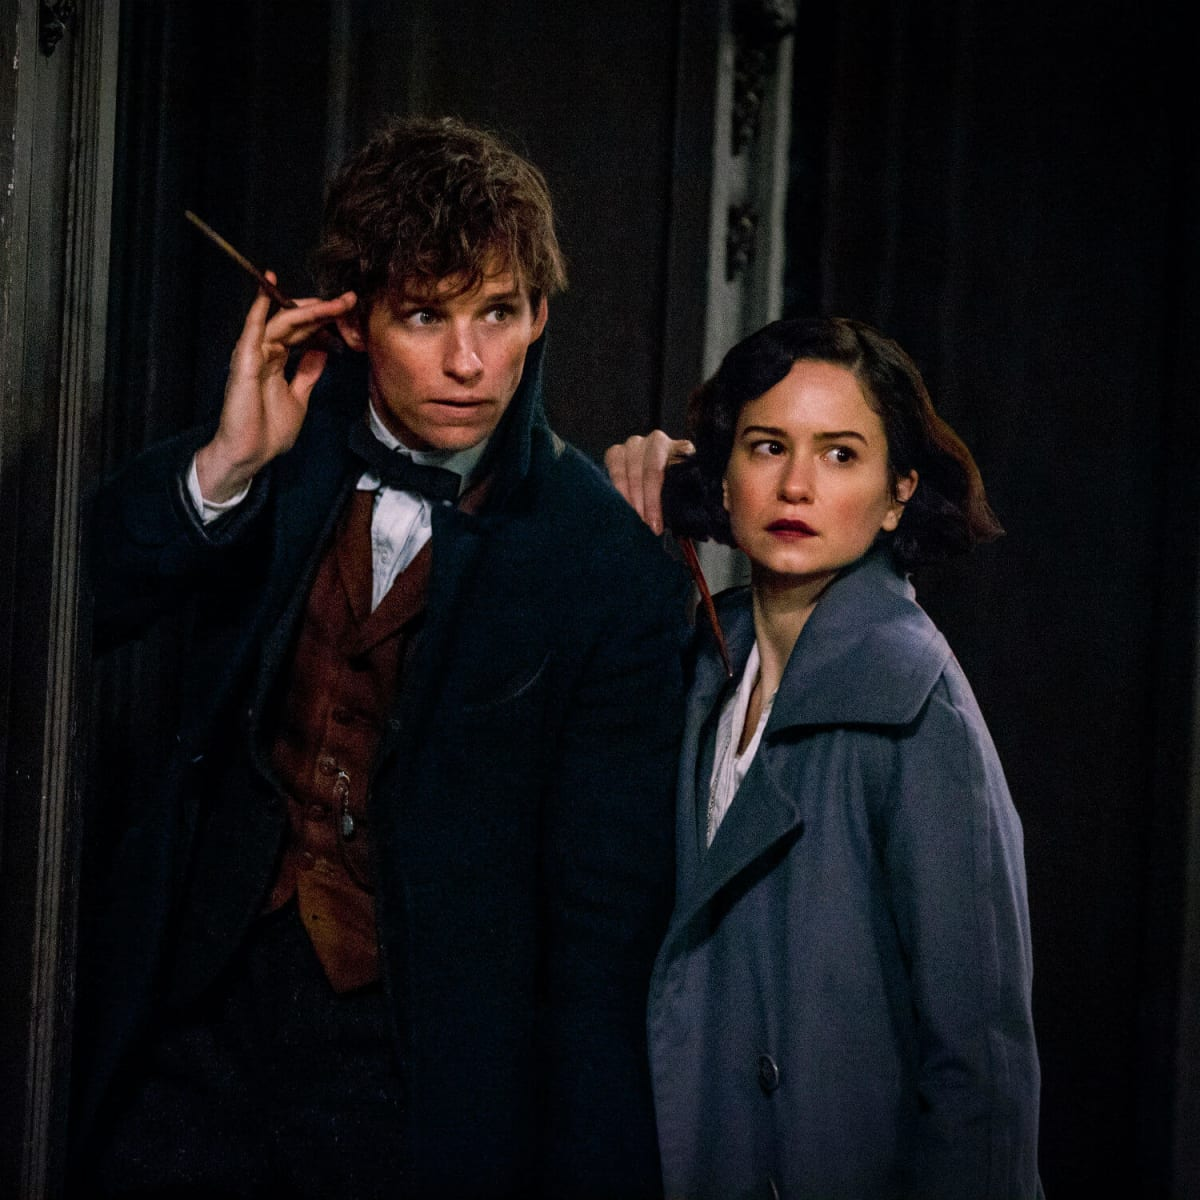 Eddie Redmayne and Katherine Waterston in Fantastic Beasts and Where to Find Them